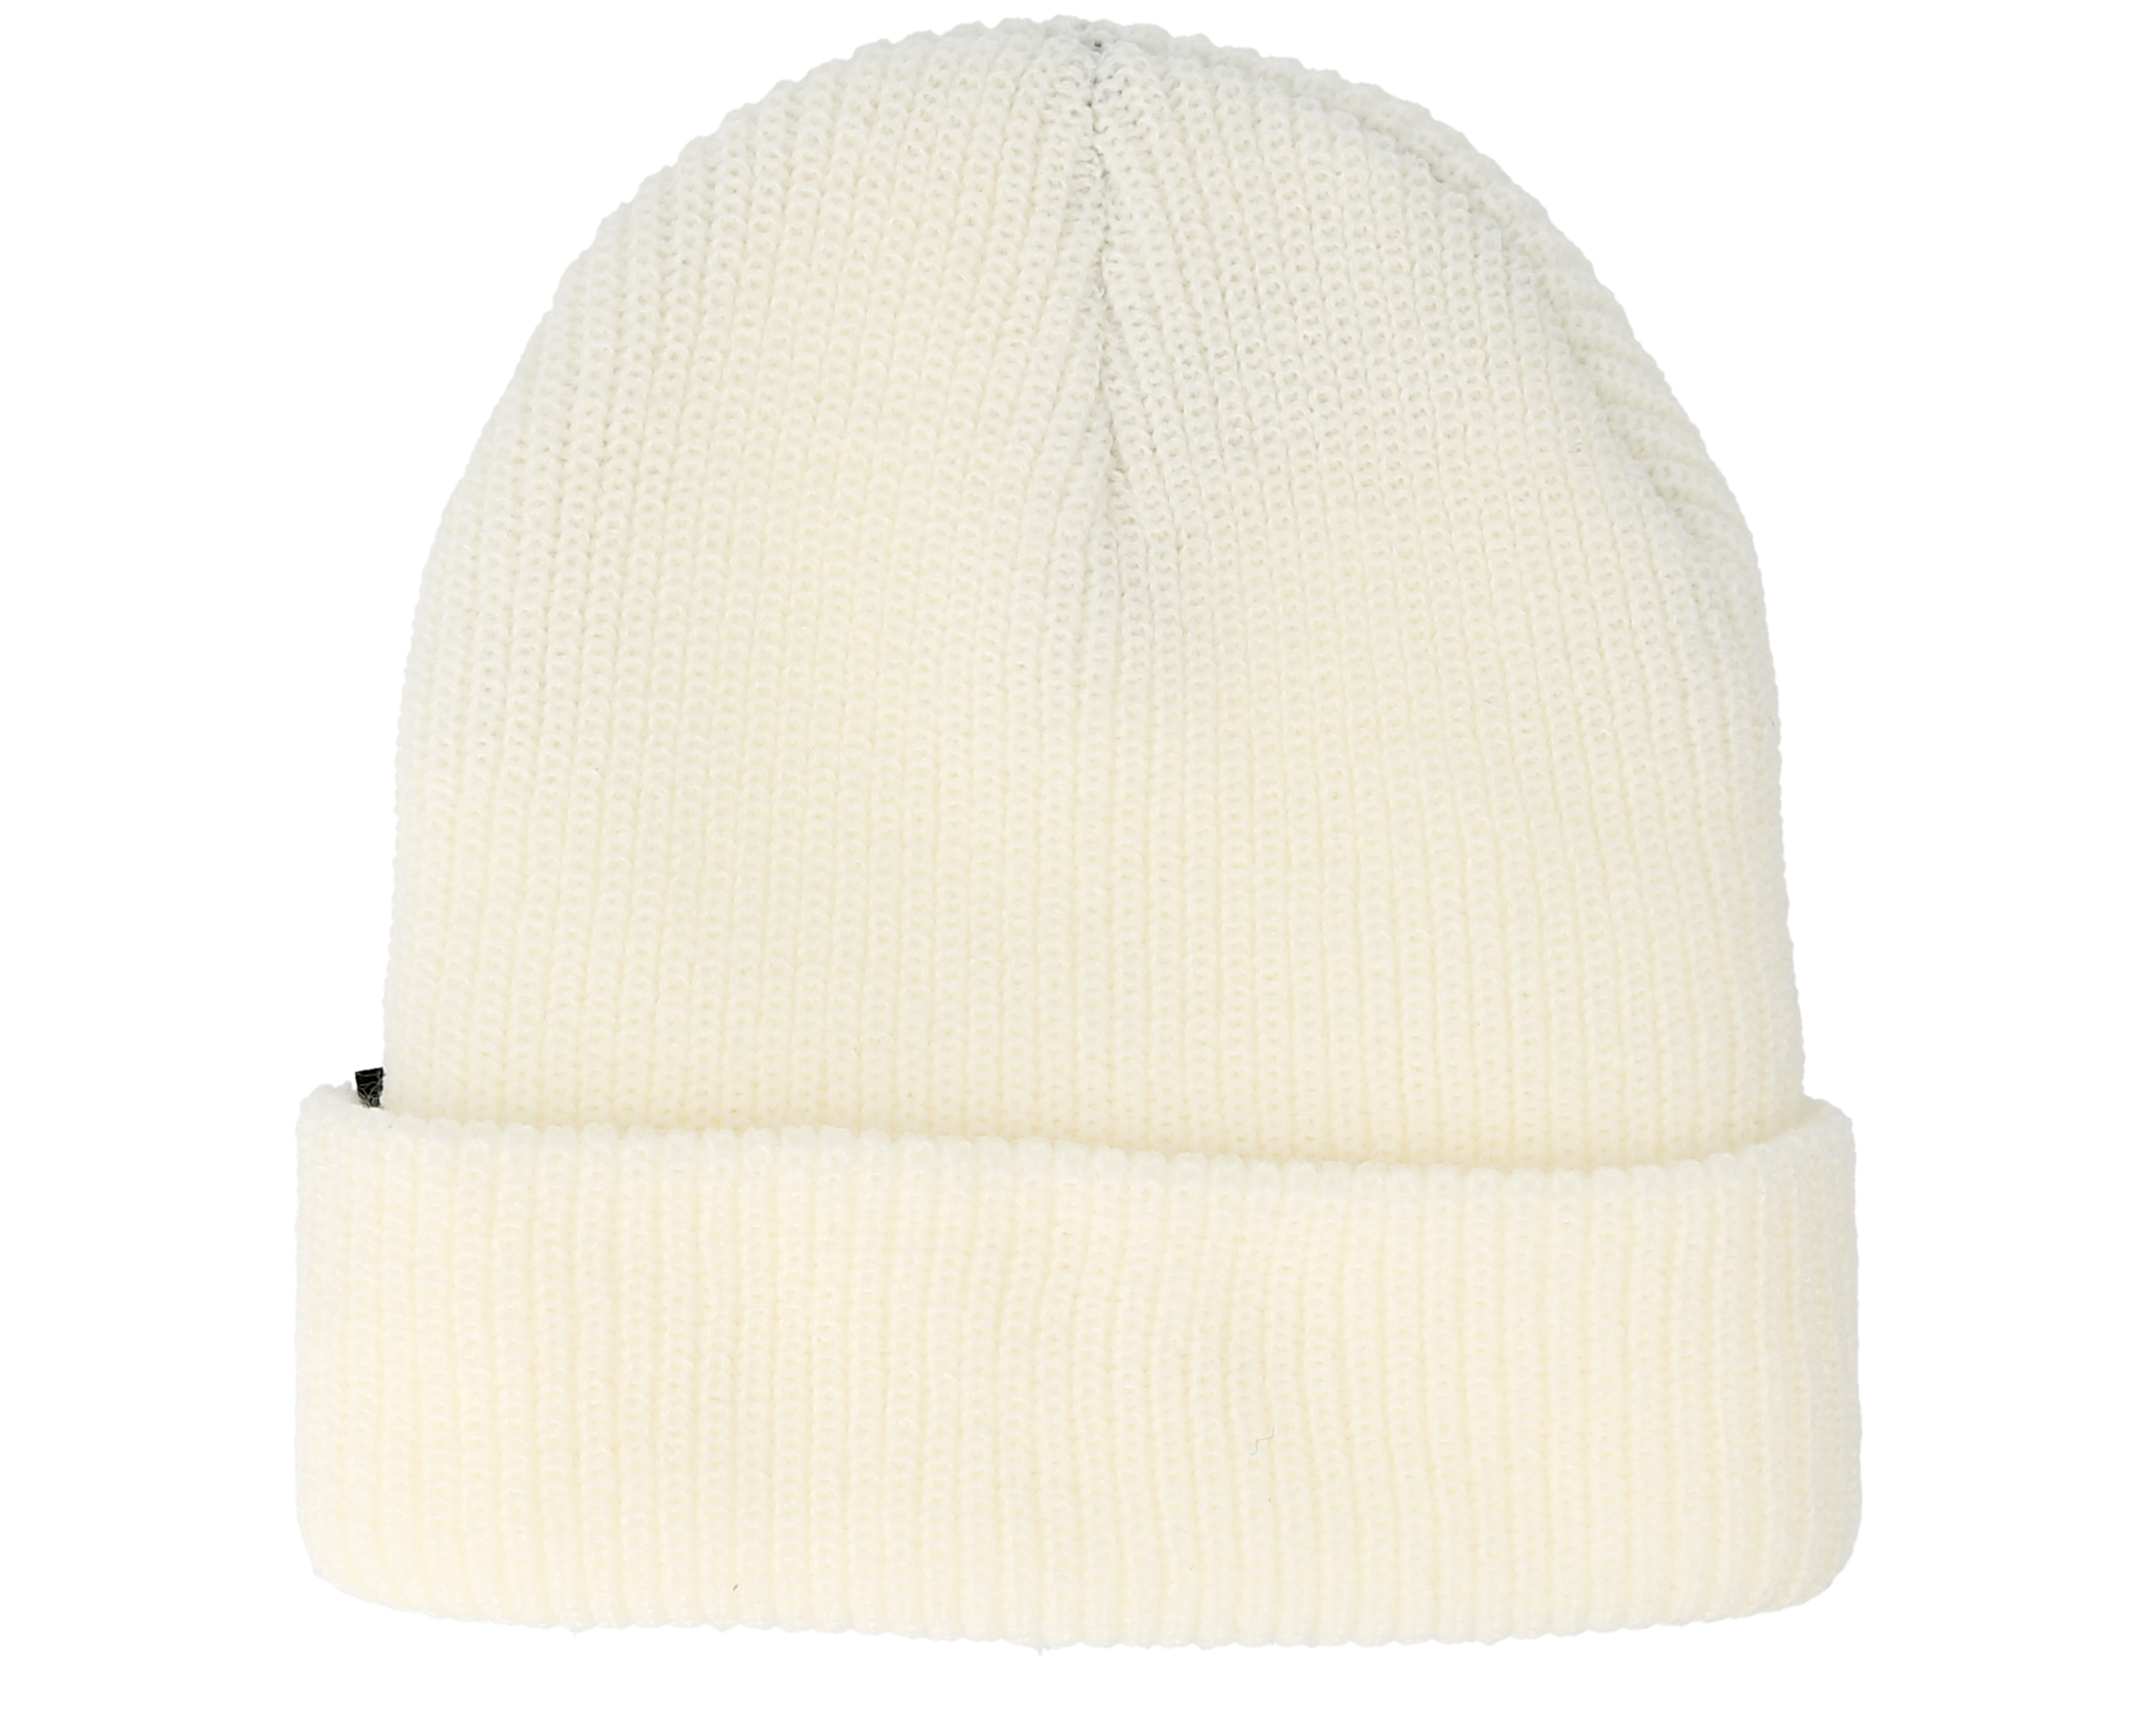 Shop Target for Hats you will love at great low prices. Spend $35+ or use your REDcard & get free 2-day shipping on most items or same-day pick-up in store.